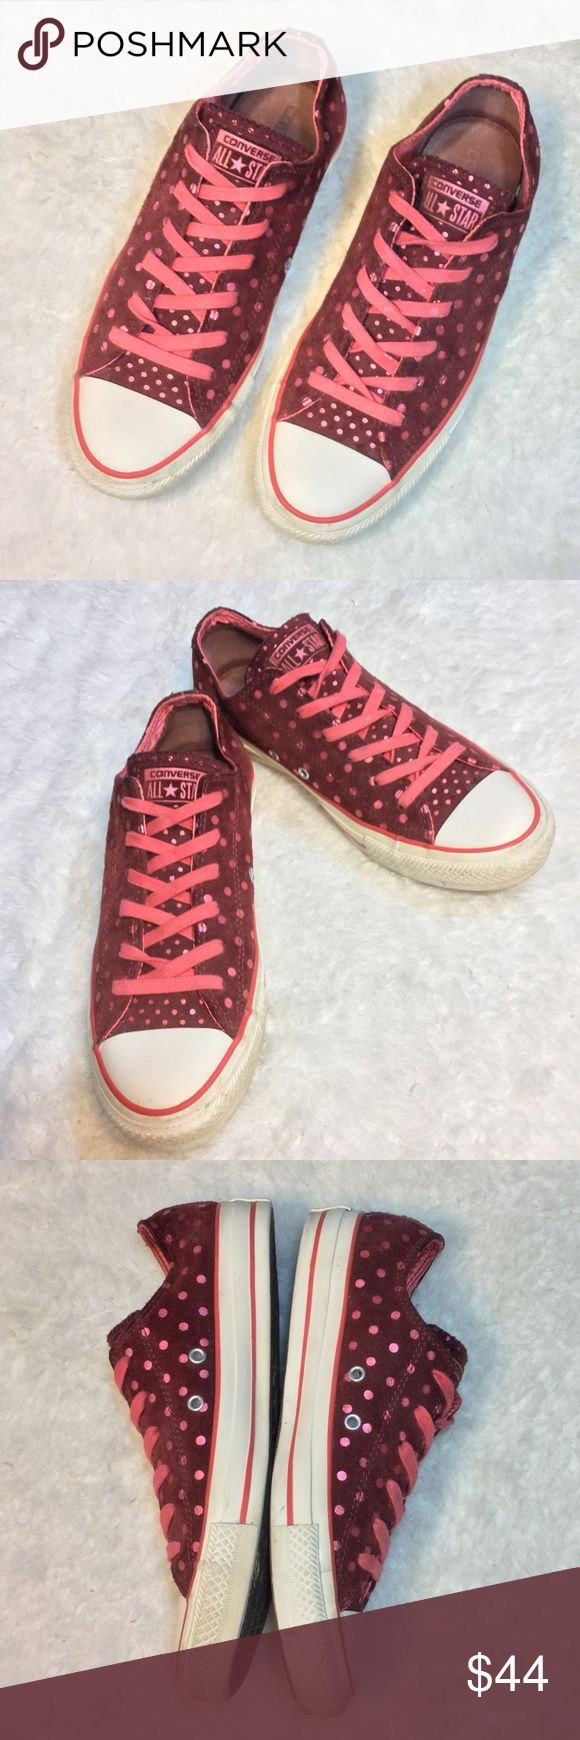 Converse Polka dot All Star Sneakers Burgandy SUEDE Converse All Stars with metallic/ reflective pink polka dot pattern & logo. Unisex: Women's size 9, Men's size 7.  Gently used shoes, only minor signs of wear. Please see pics. (Some minor discoloration on the inside of the tongue, not visible when worn.)  I ❤️ Bundles & Offers! NO TRADES  Tags: Chuck Taylor. Chucks. Trainers. Sueded. Shiny. Unique. Punk rock. Hipster. Hip. On trend. Converse Shoes Sneakers